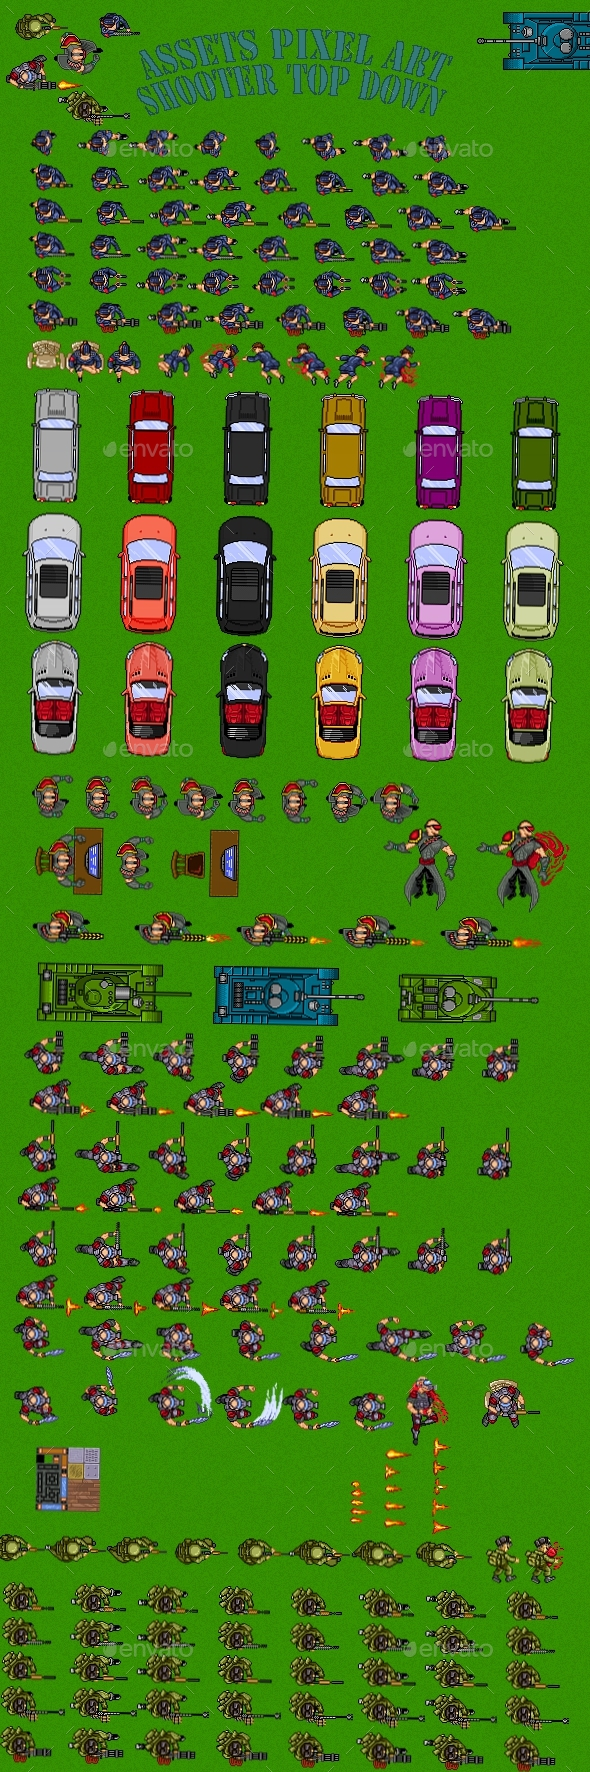 Assets Pixel Art Shooter Top Down - Sprites Game Assets